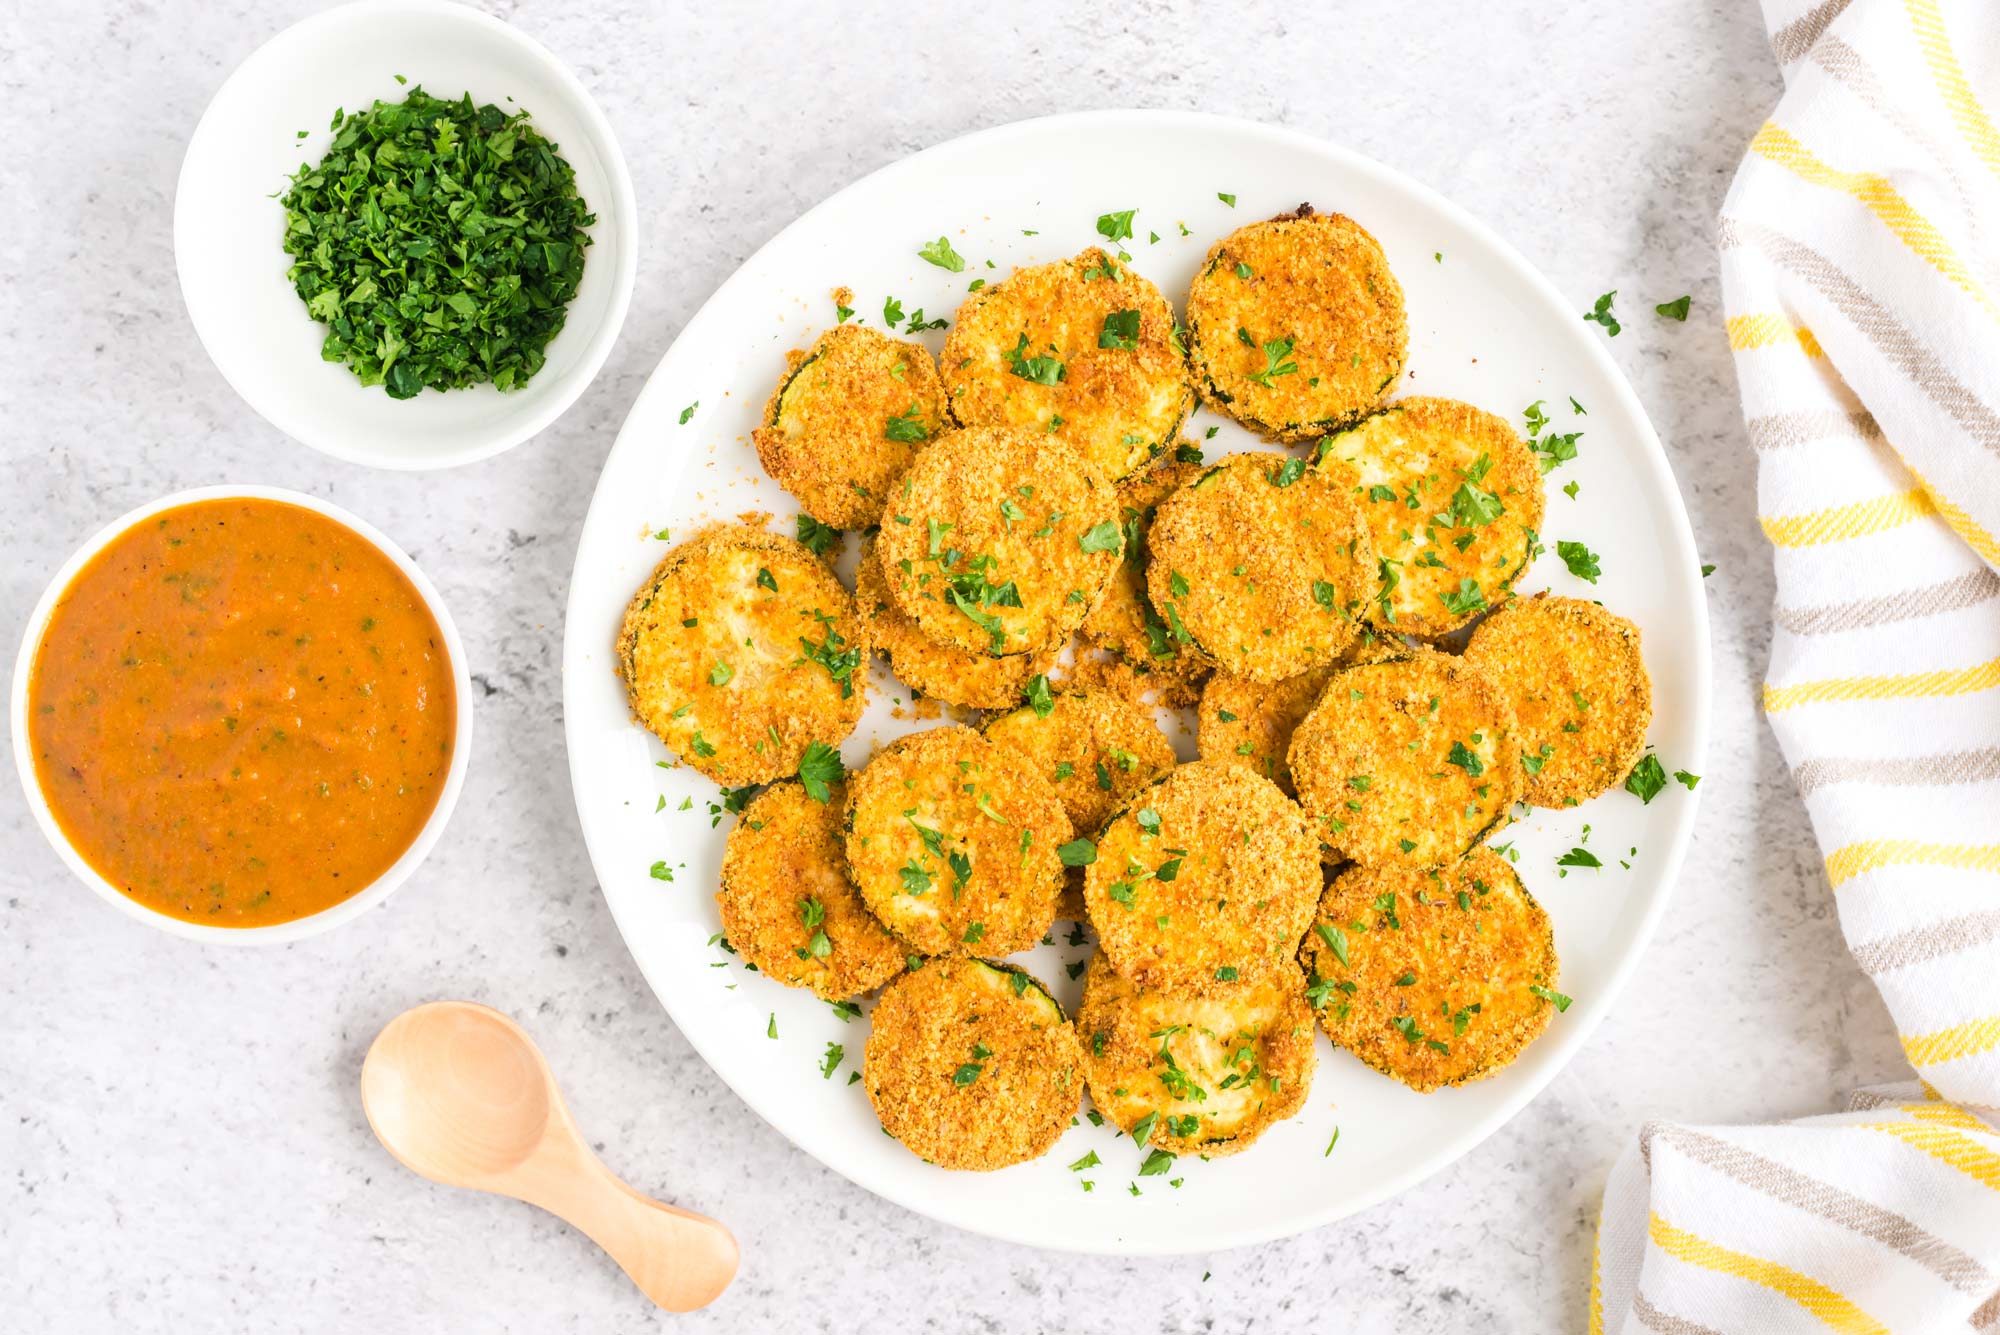 Garlicky vegan cheesy squash bites